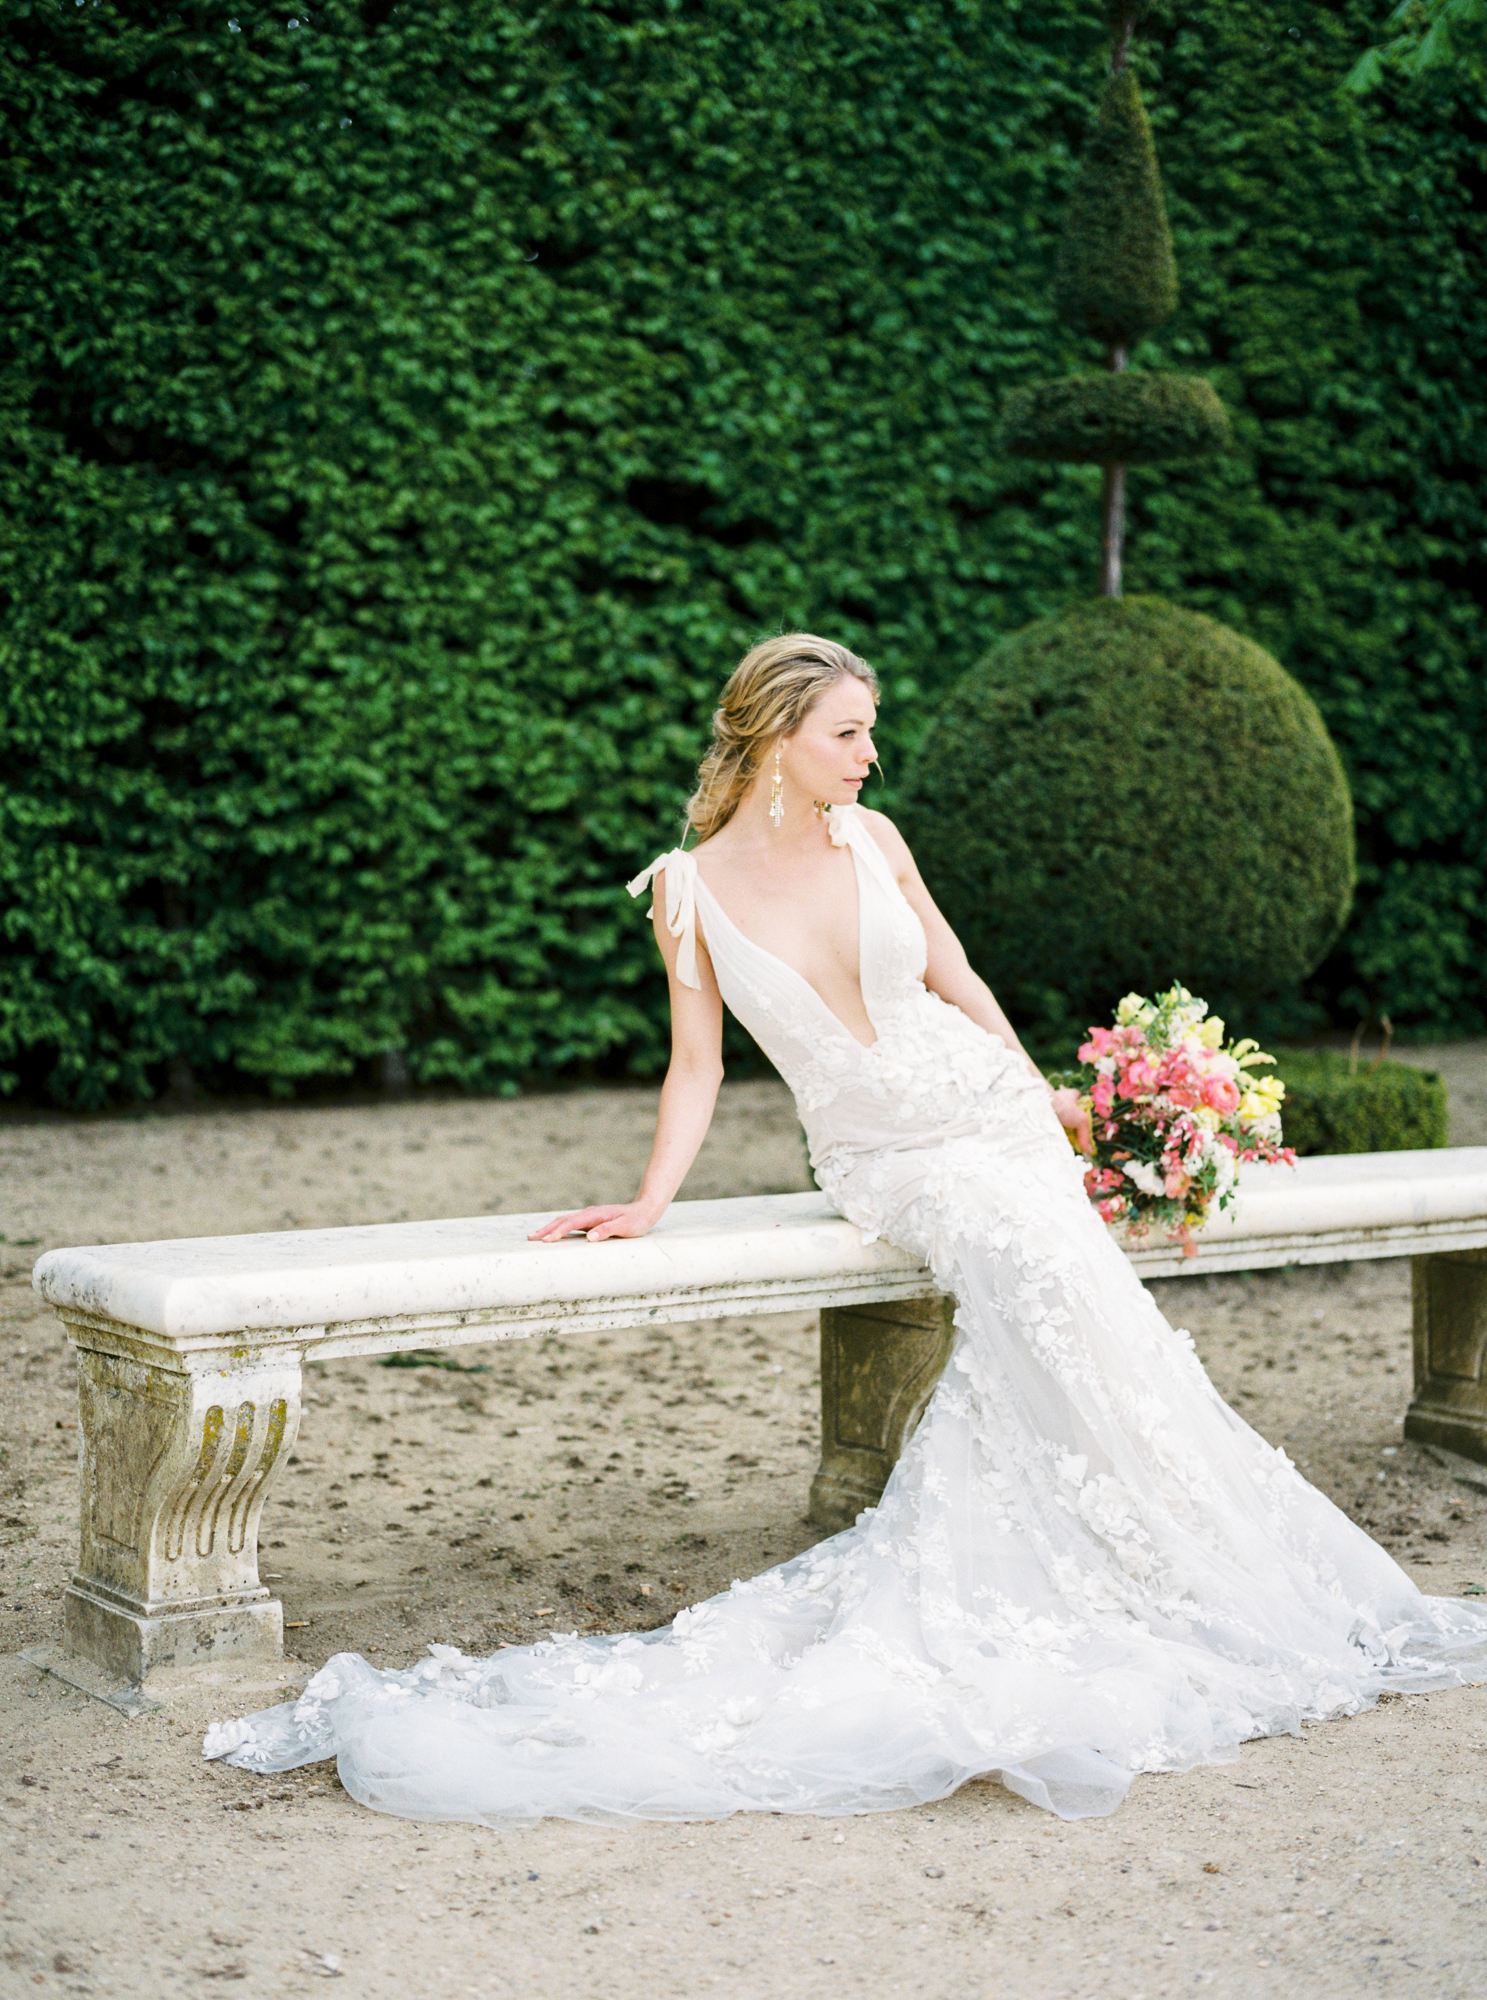 travellur_photoshoot__summer_in_versailles_wedding_flowers_bridal_luxe_shoot_floral_france_bride_dress_gown_galia_lahav.jpg